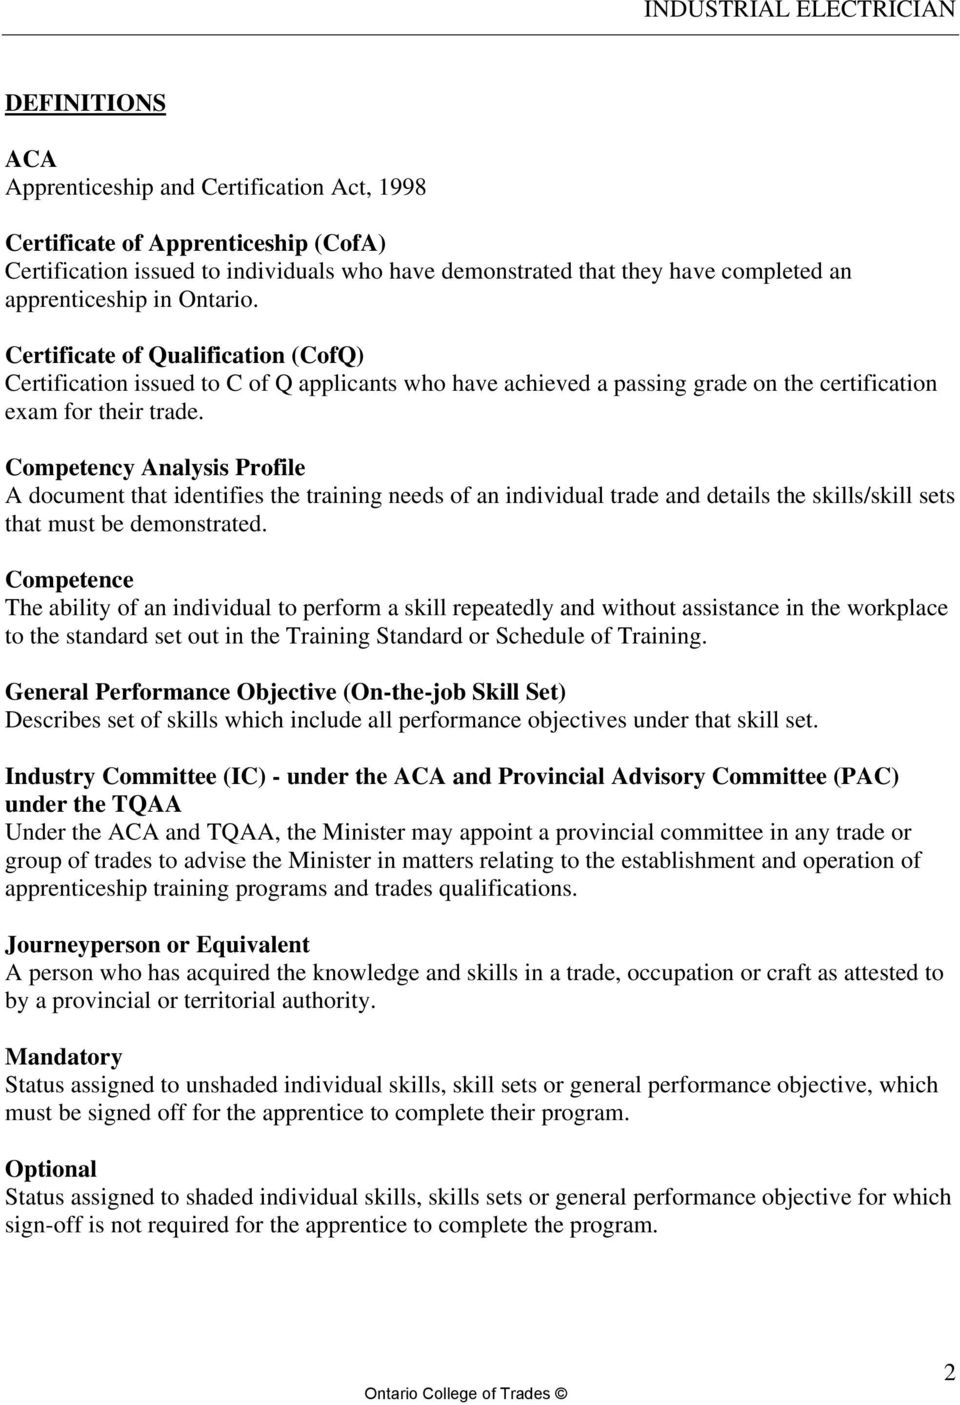 Competency Analysis Profile A document that identifies the training needs of an individual trade and details the skills/skill sets that must be demonstrated.